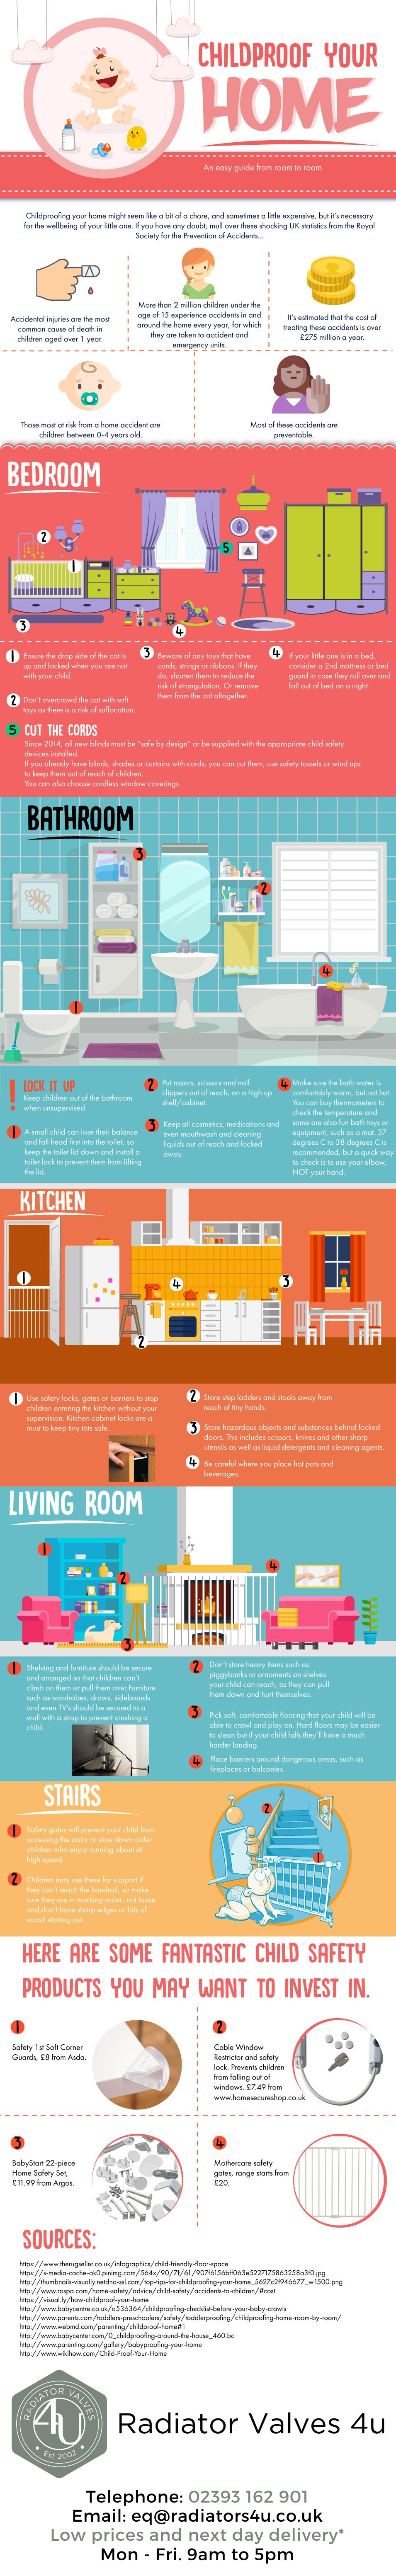 Infographic - Child proofing your home